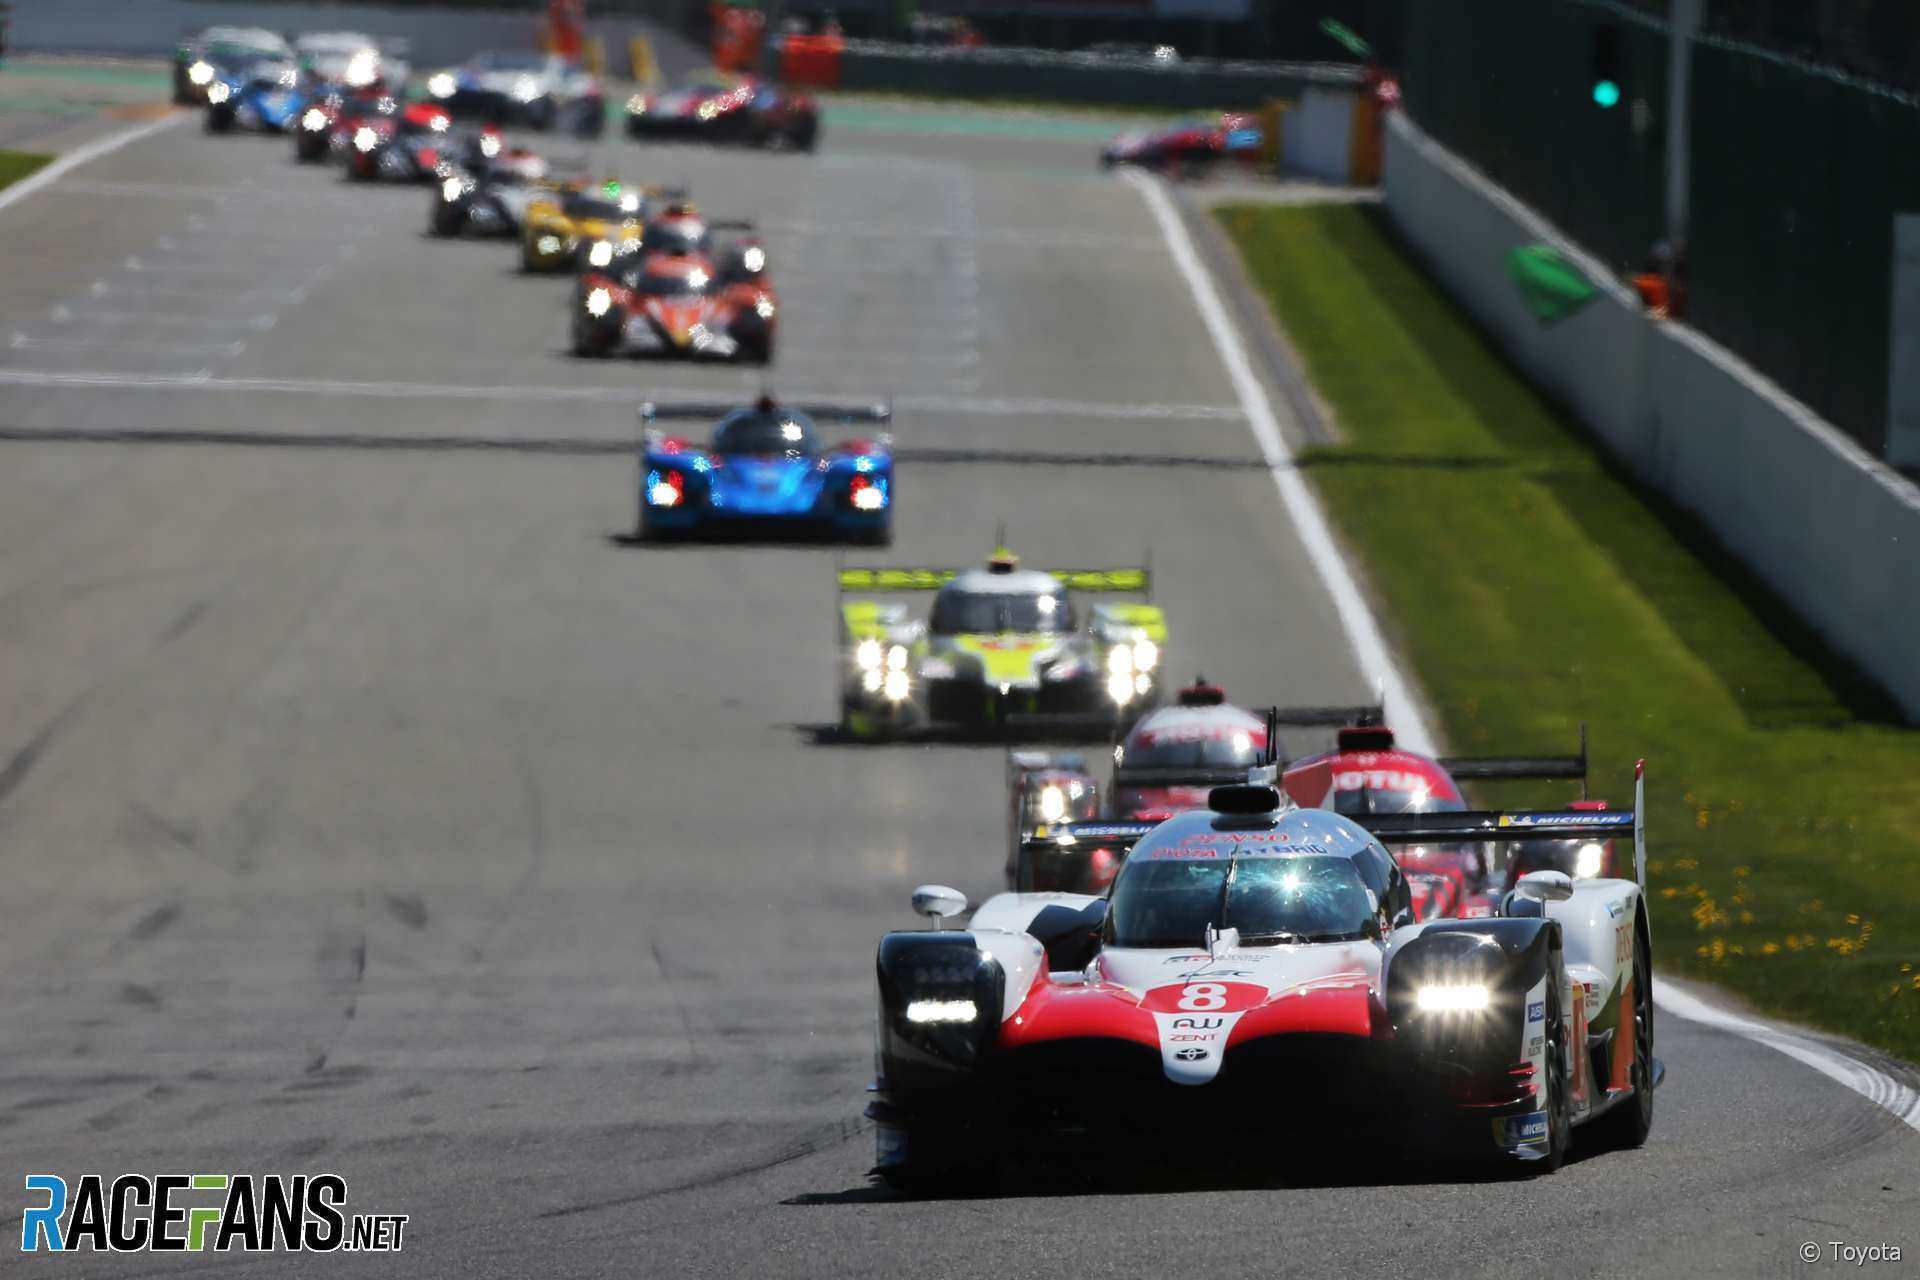 58 All New BMW Lmp1 2020 Pictures